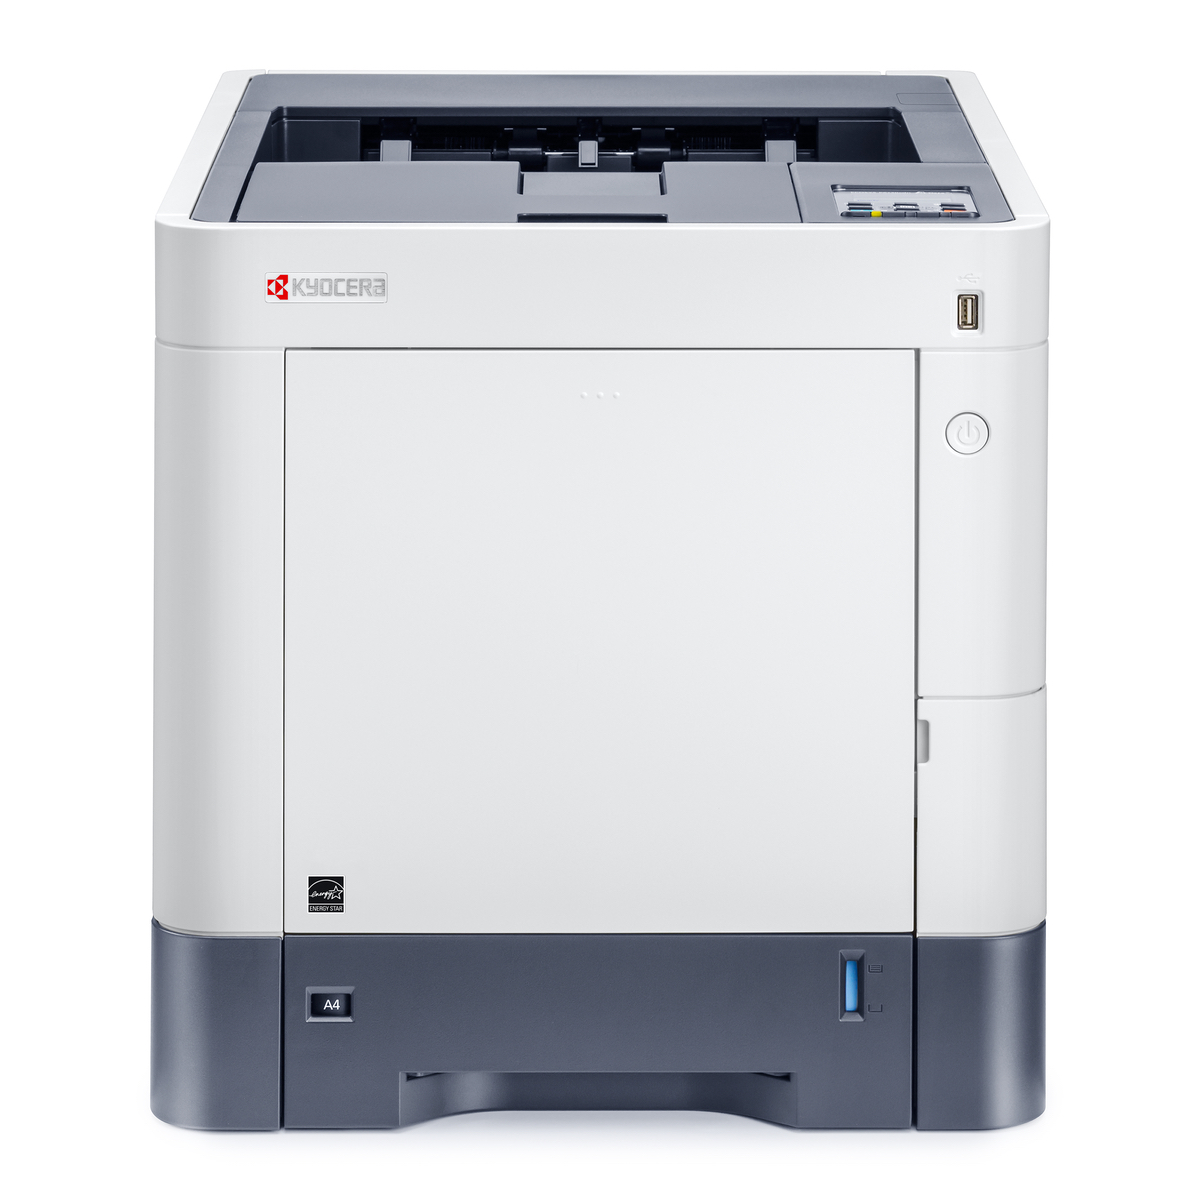 Kyocera Printers:  The Kyocera ECOSYS P6230cdn Printer